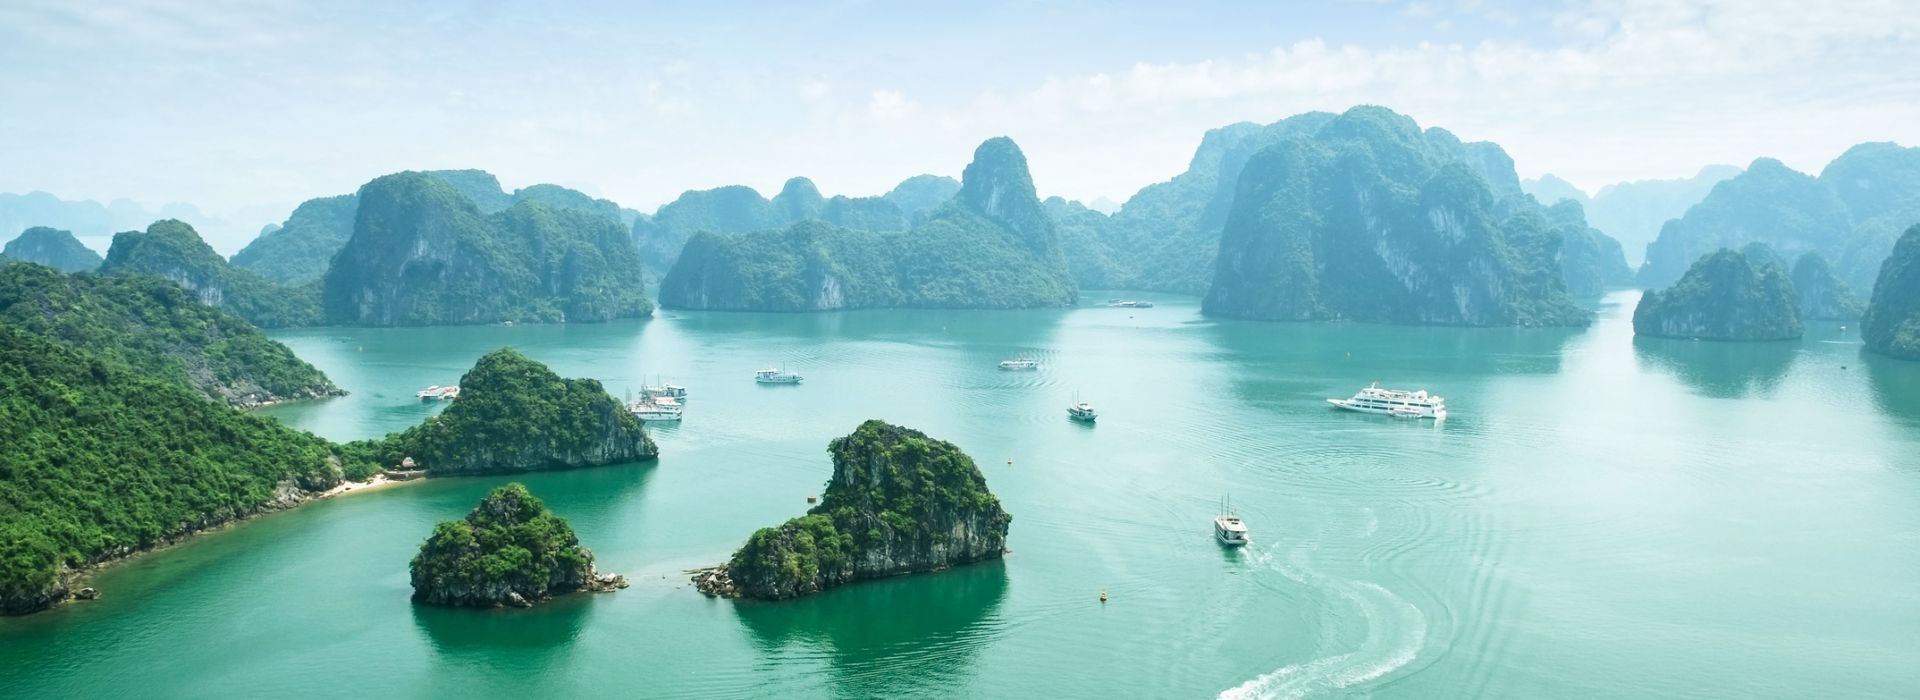 Luxury Tours in Ho Chi Minh City